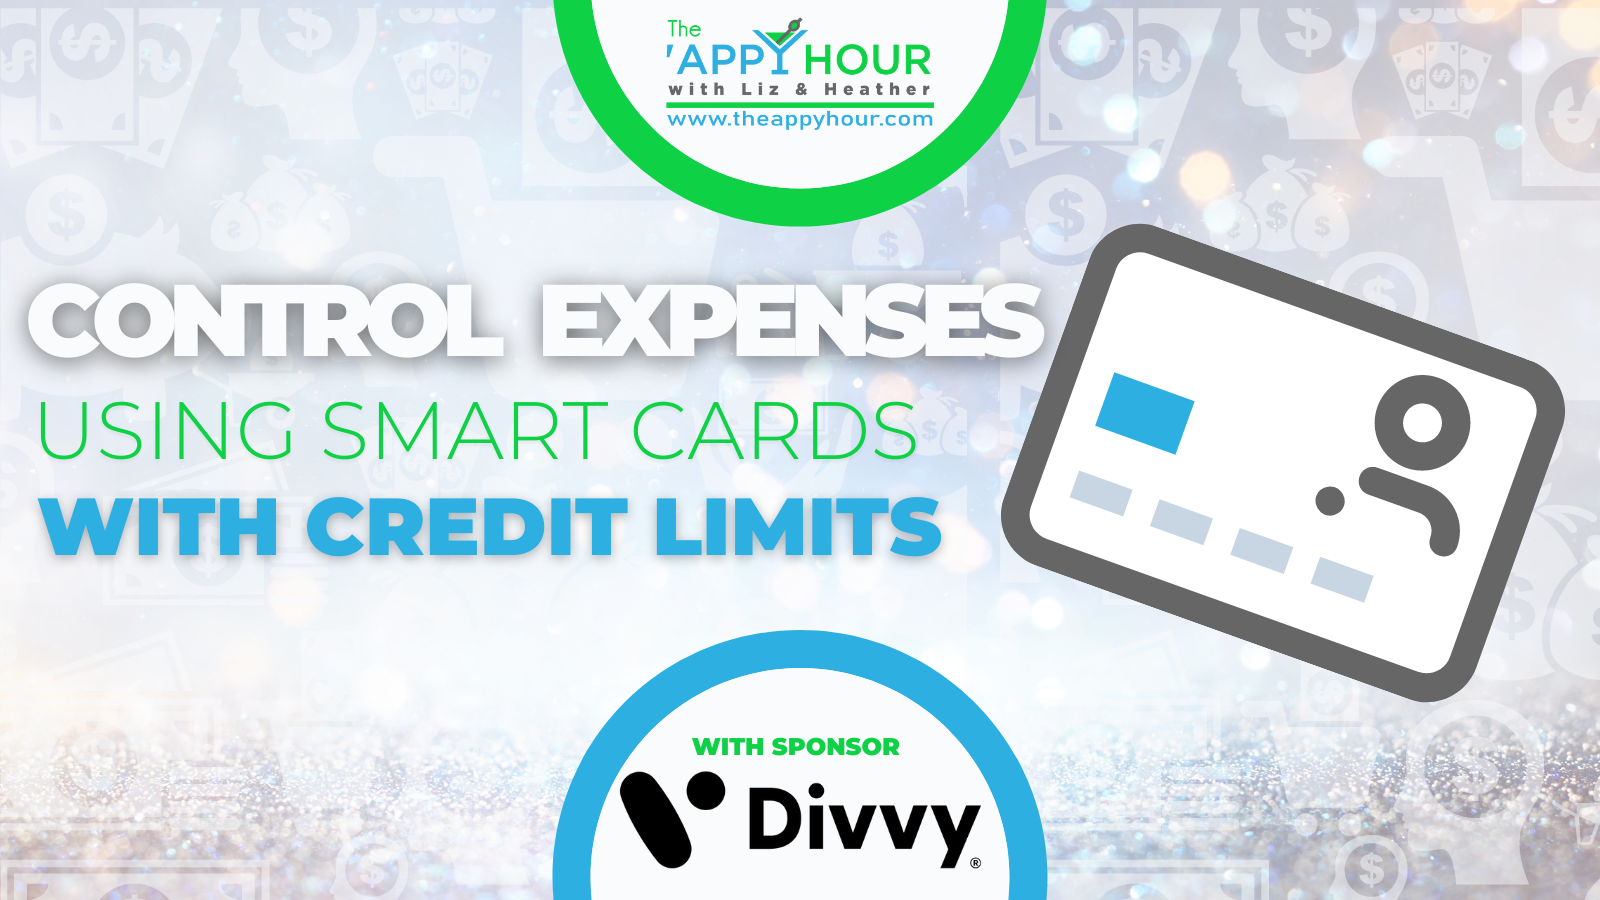 Control Expenses Using Smart Cards With Credit Limits